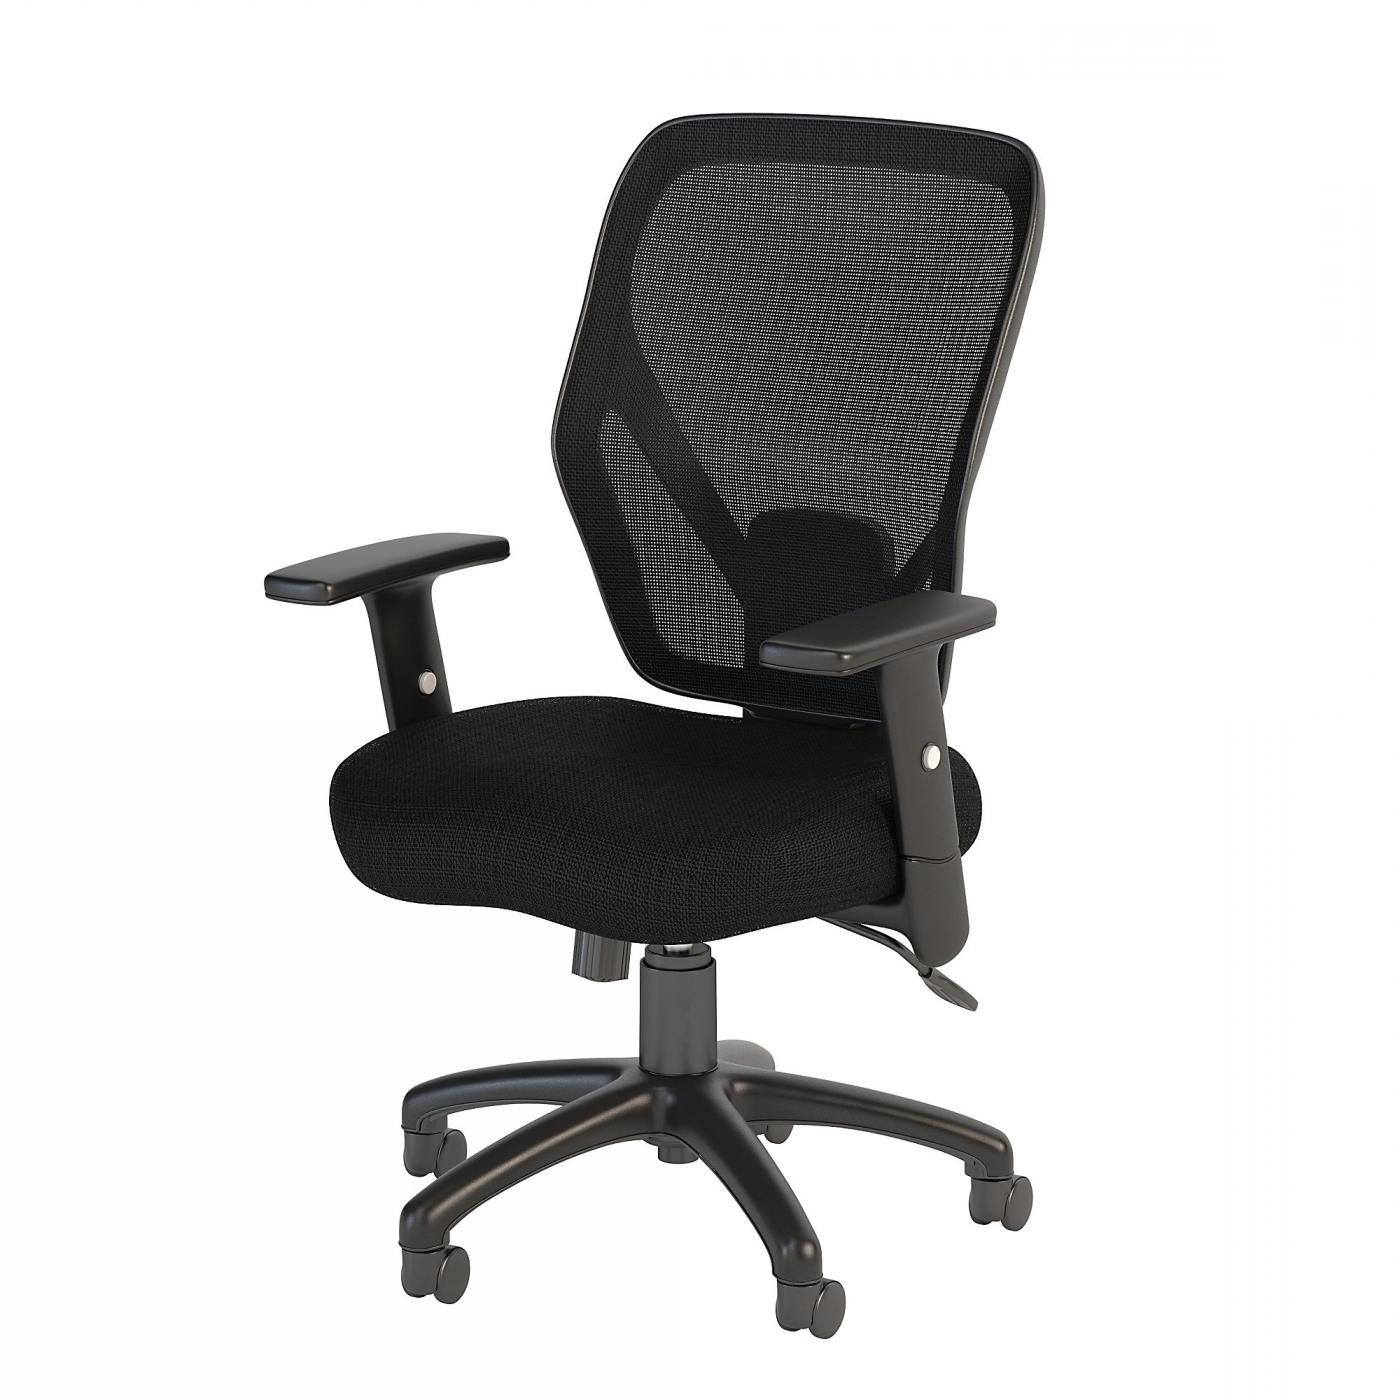 </b></font><b>BUSH BUSINESS FURNITURE ACCORD MESH BACK OFFICE CHAIR. FREE SHIPPING</font>. </b></font></b>